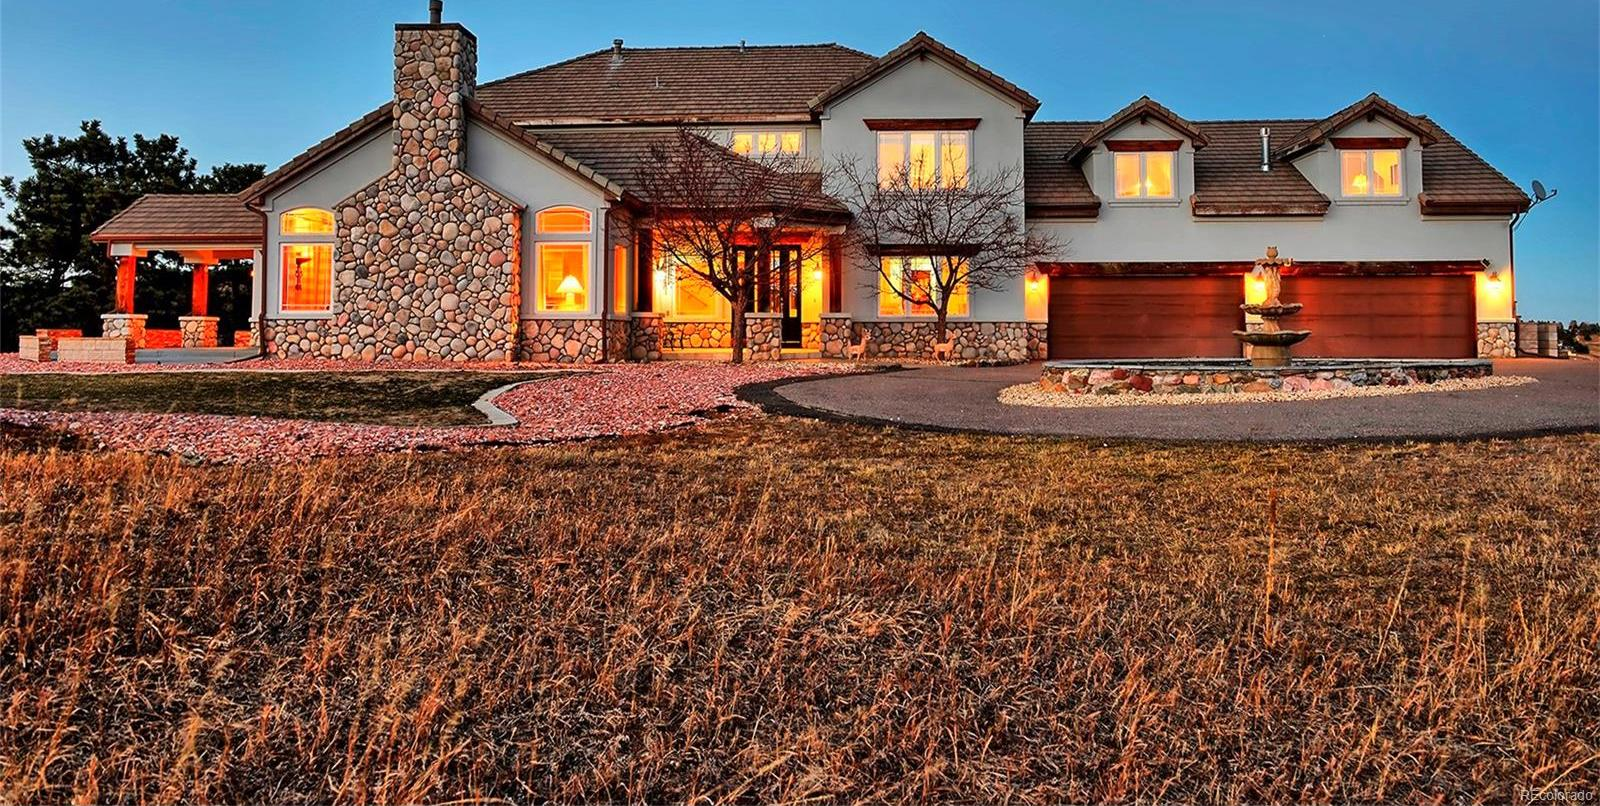 CIRCLE DRIVEWAYS IN FRONT & BACK*OVER 8K SQ FT HOME